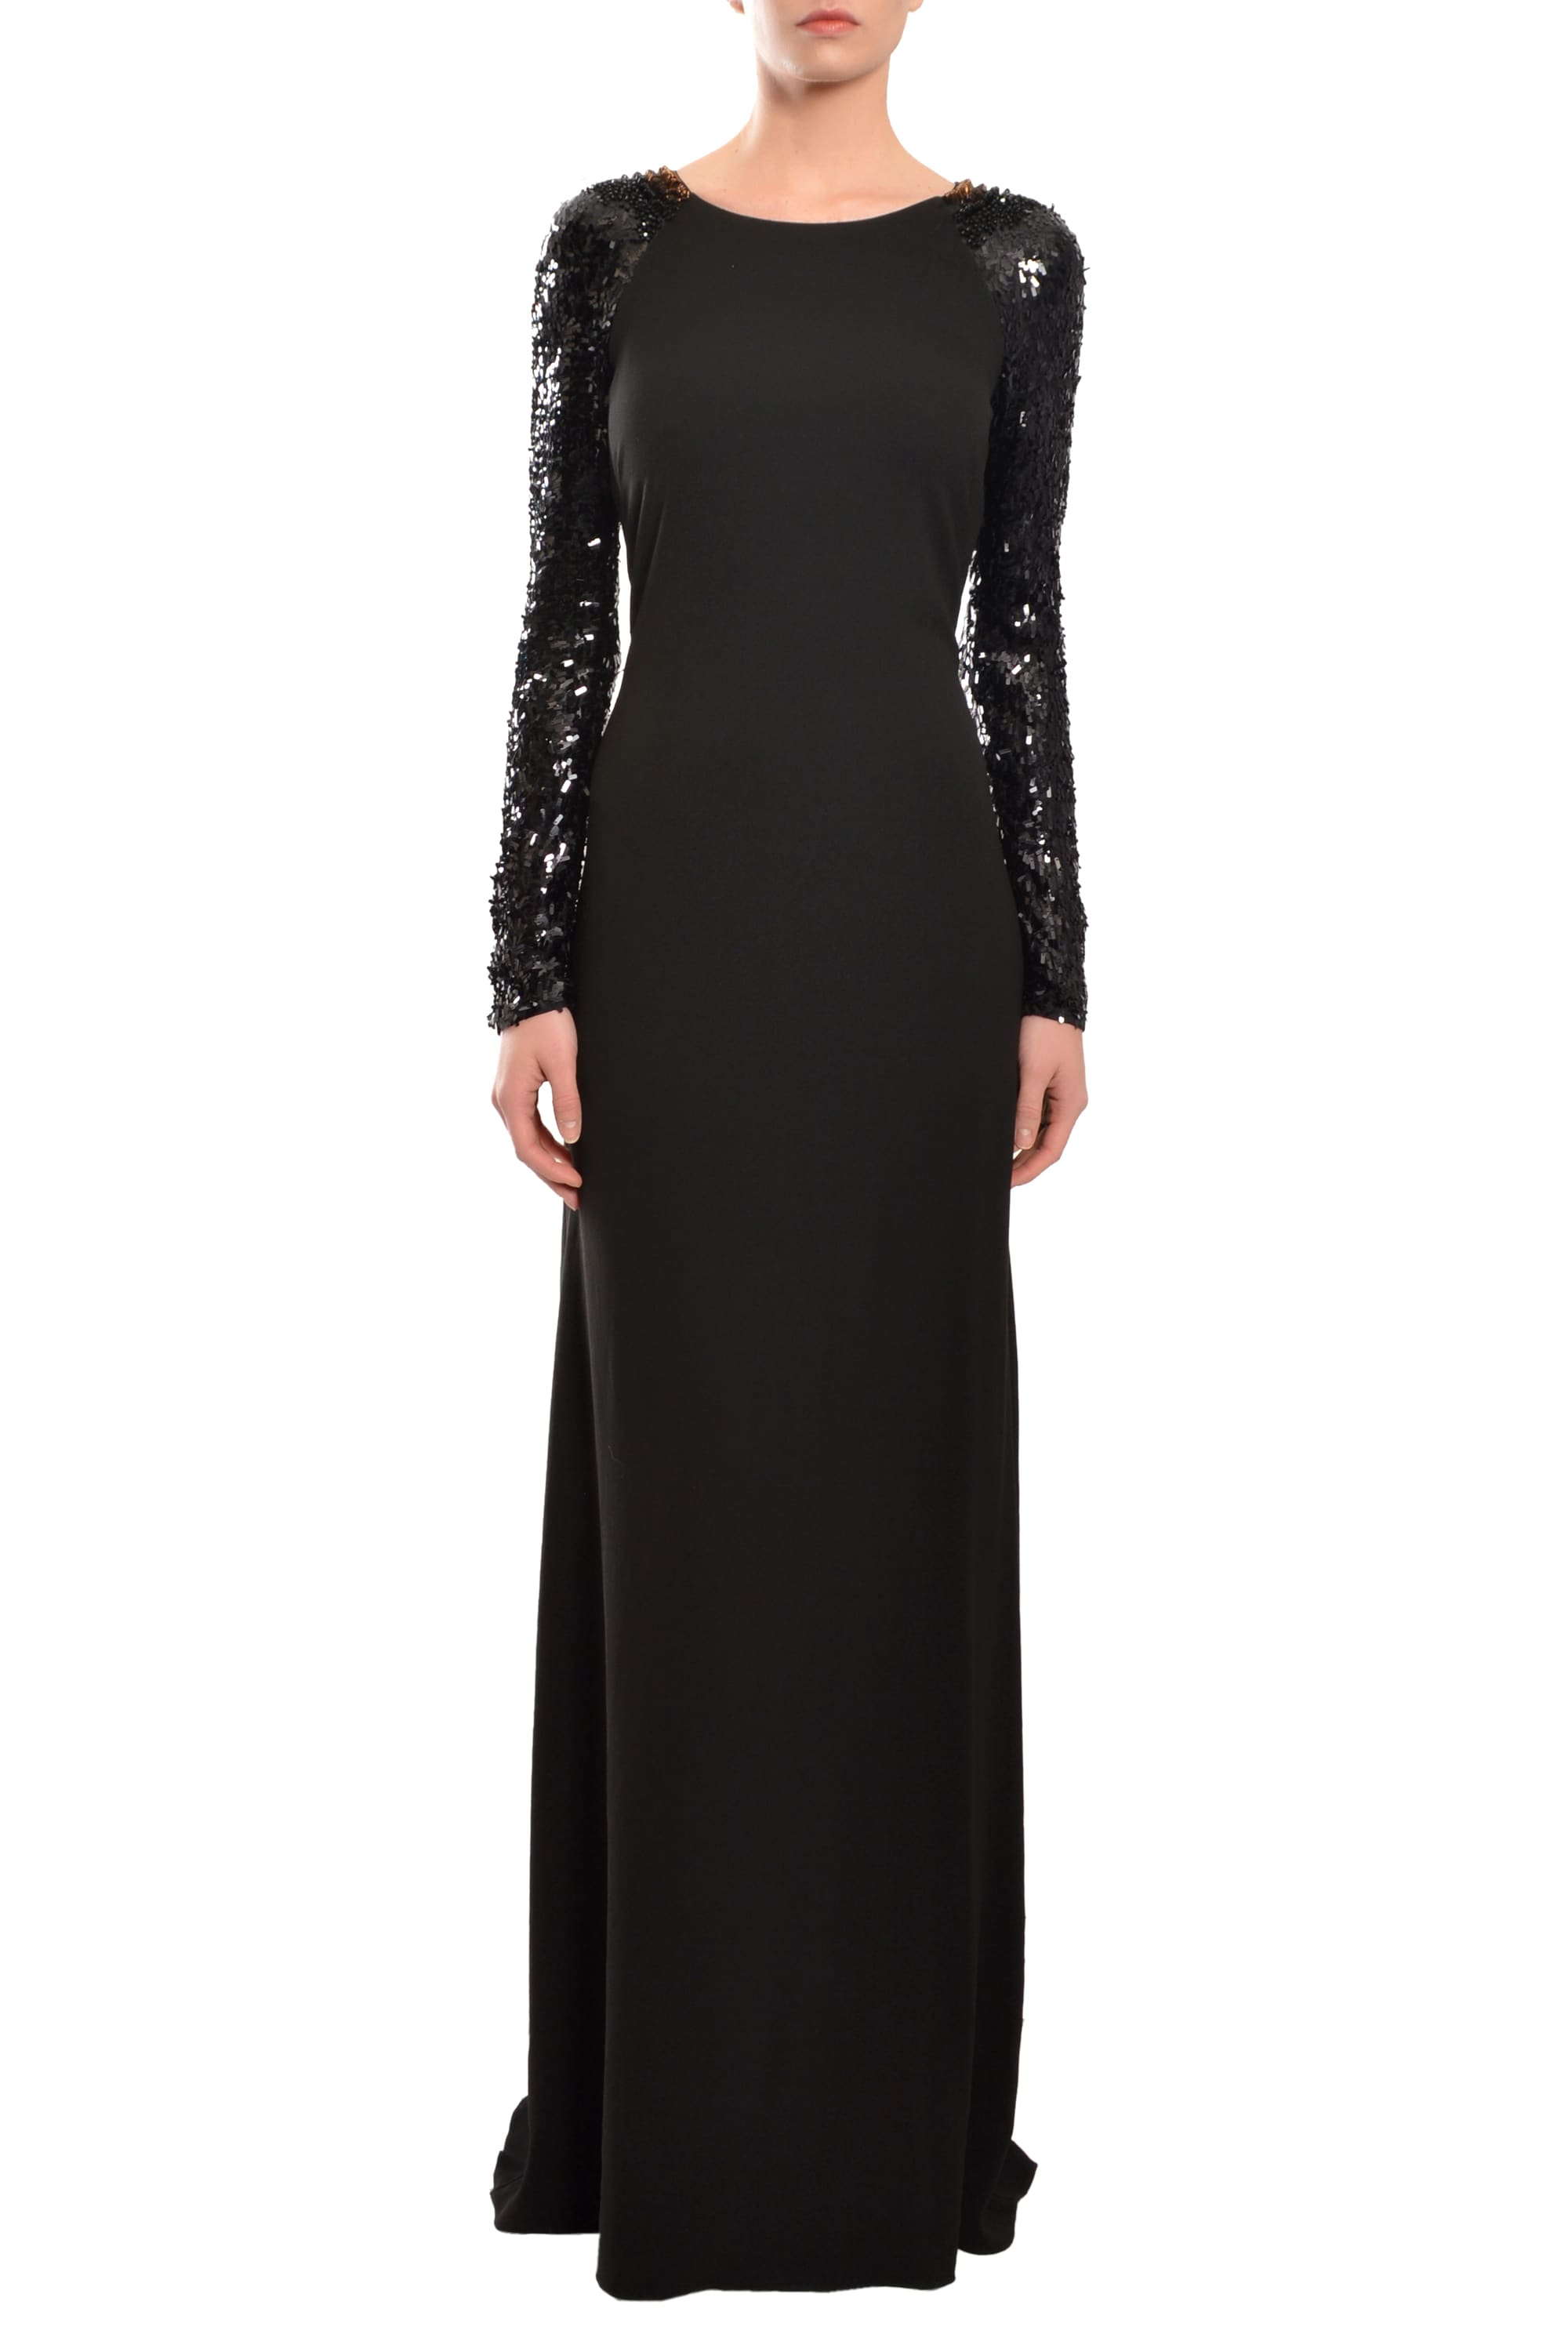 Halston Heritage Black Embellished Crepe Evening Dress